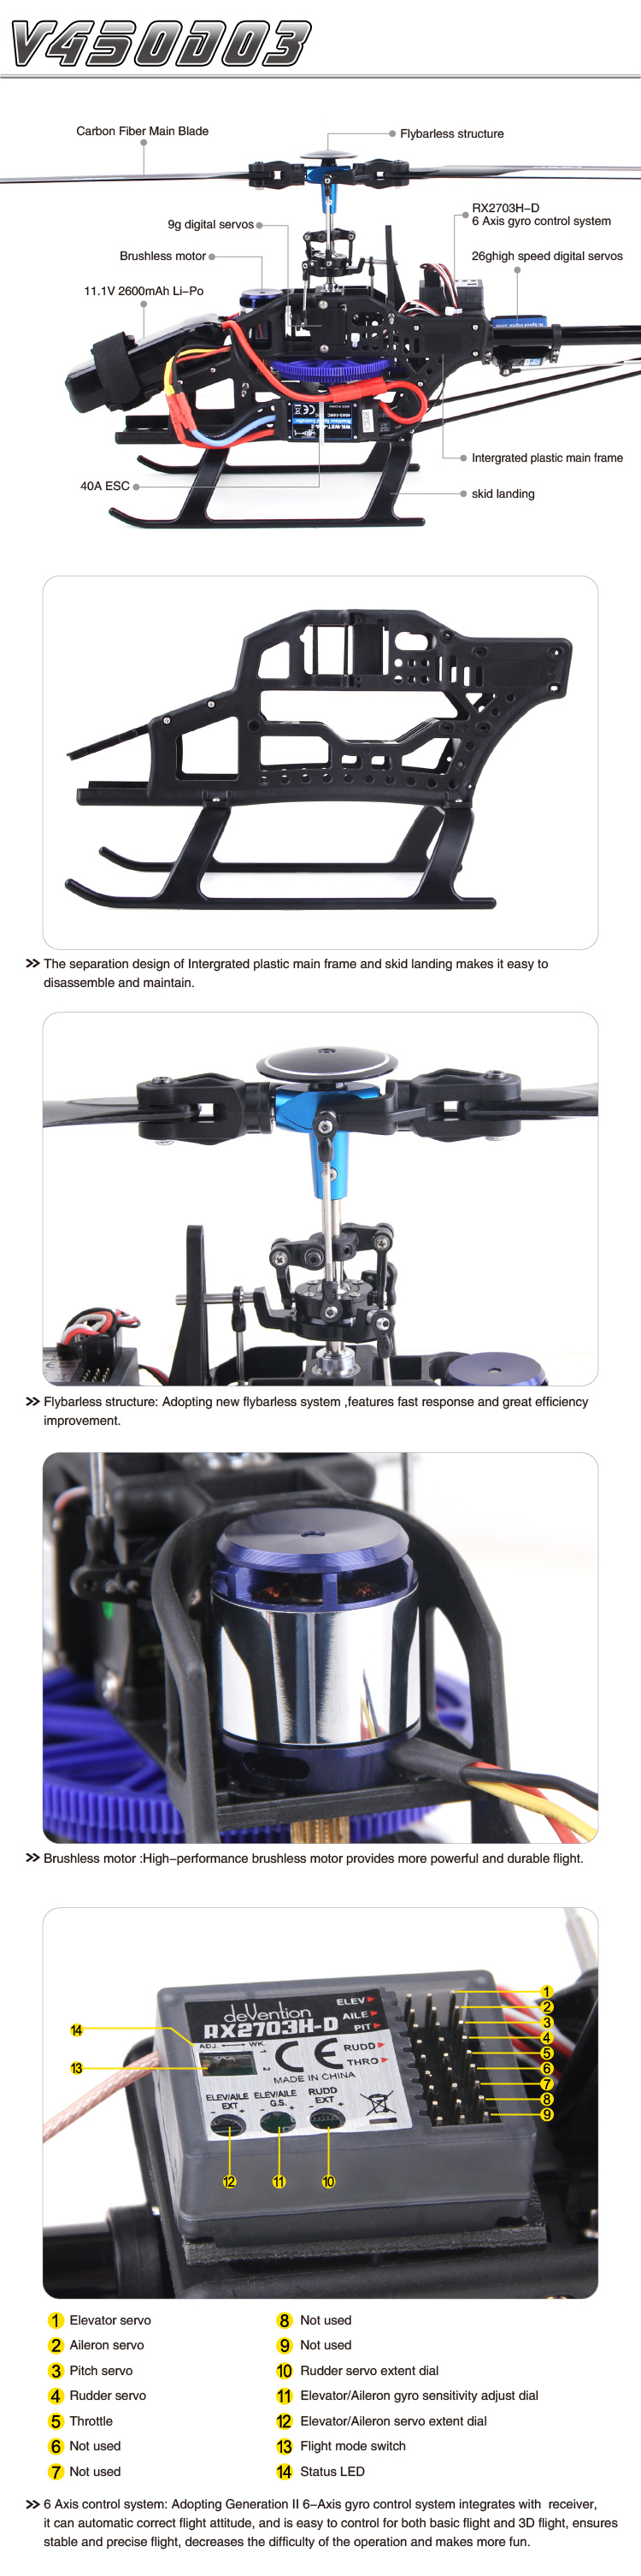 Walkera V450D03 with DEVO 12S Transmitter 6CH 3D 6-axis-Gyro Flybarless Helicopter RTF 2.4Ghz